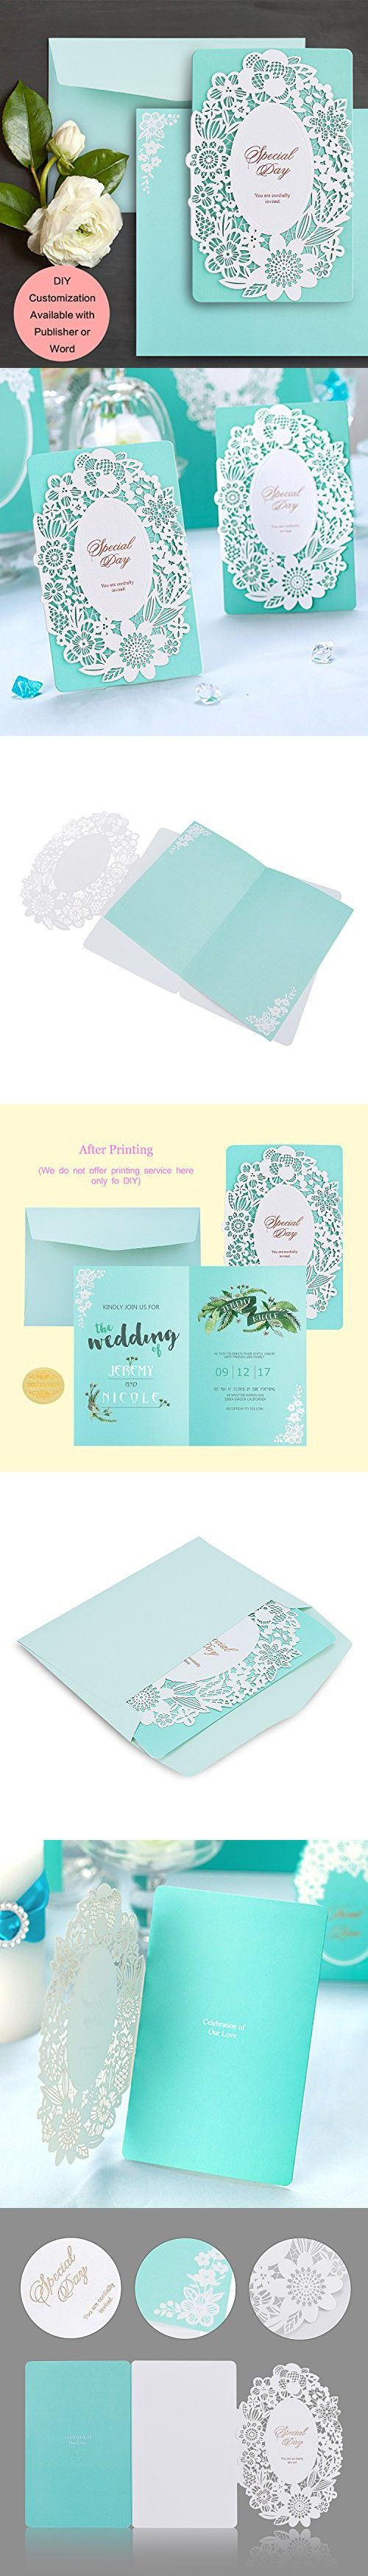 Weddingbob 20Pcs Laser Cut Wedding Invitations Cards